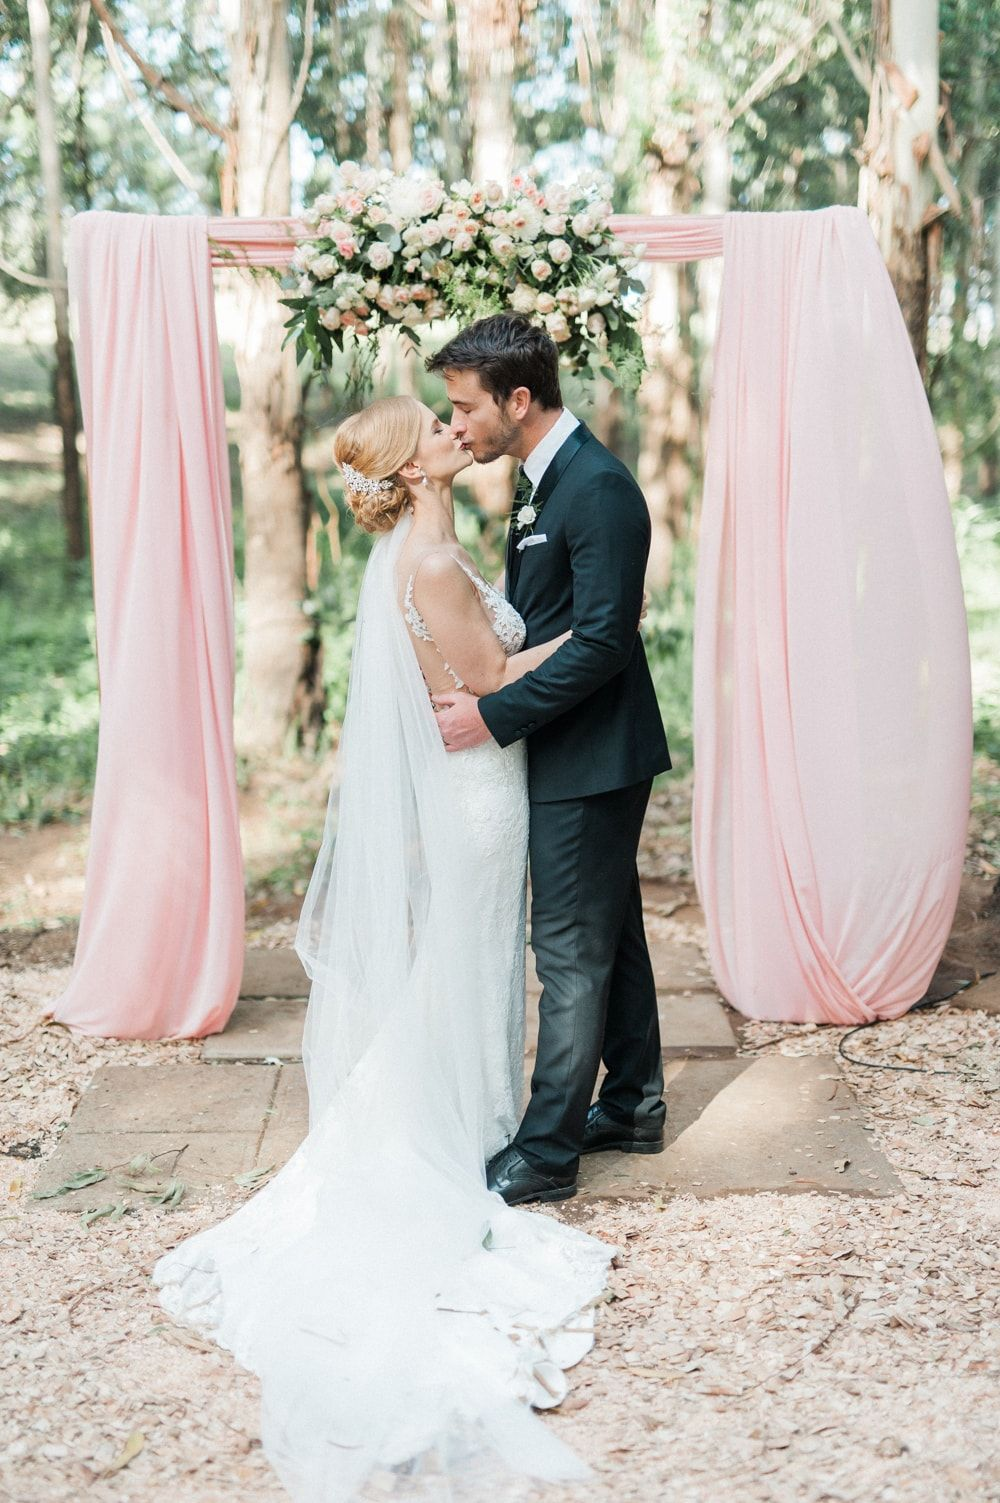 Blush & Rose Gold Wedding at The Venue Fontana by Bright